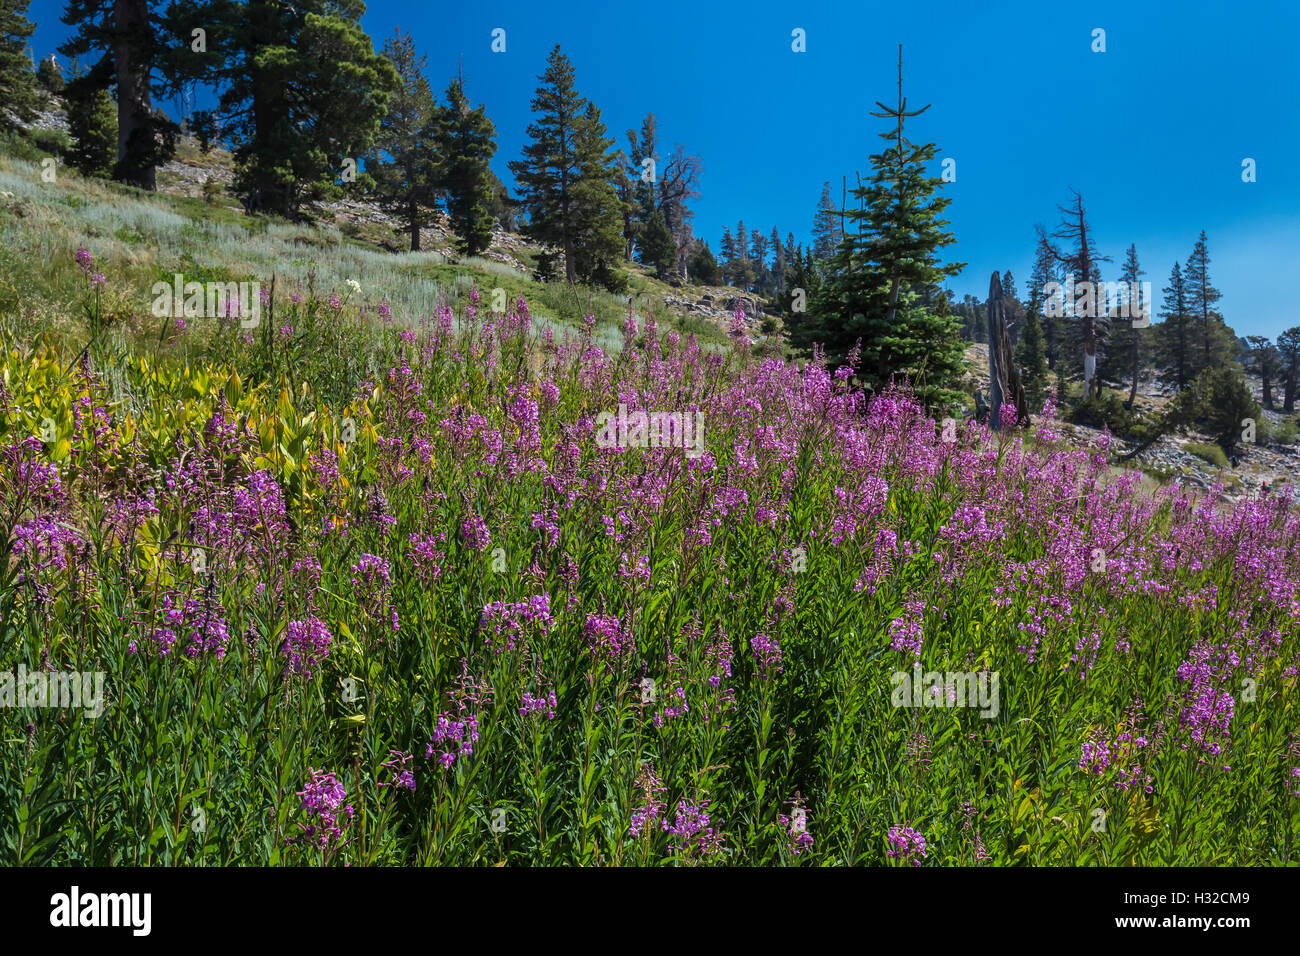 Fireweed, Chamerion angustifolium, blooming in a subalpine meadow in the Desolation Wilderness, California, USA - Stock Image